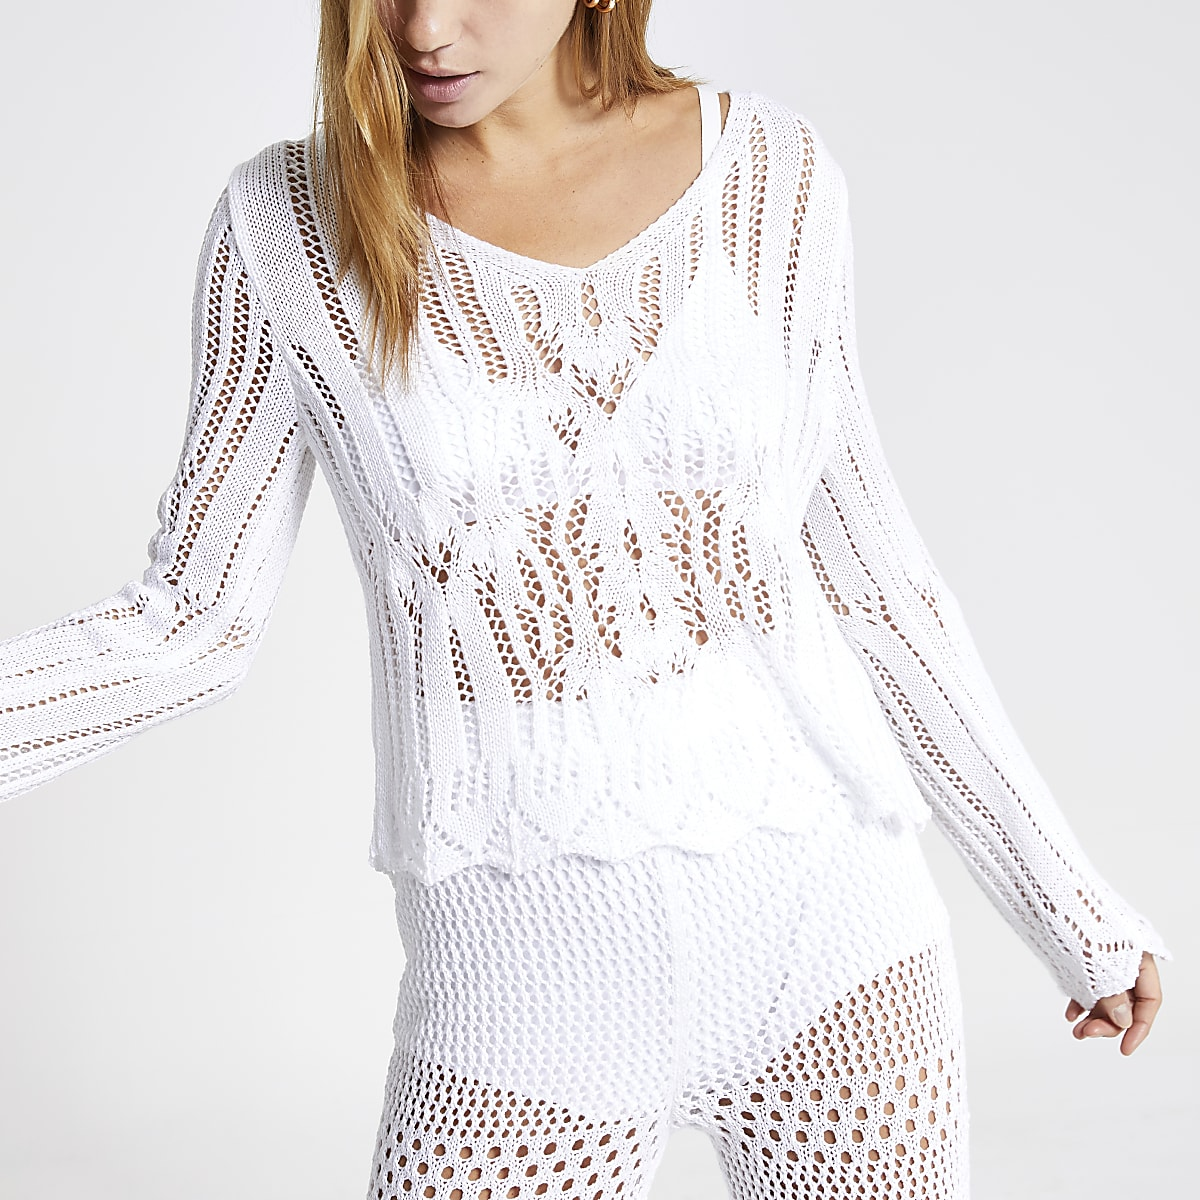 White crochet long sleeve top